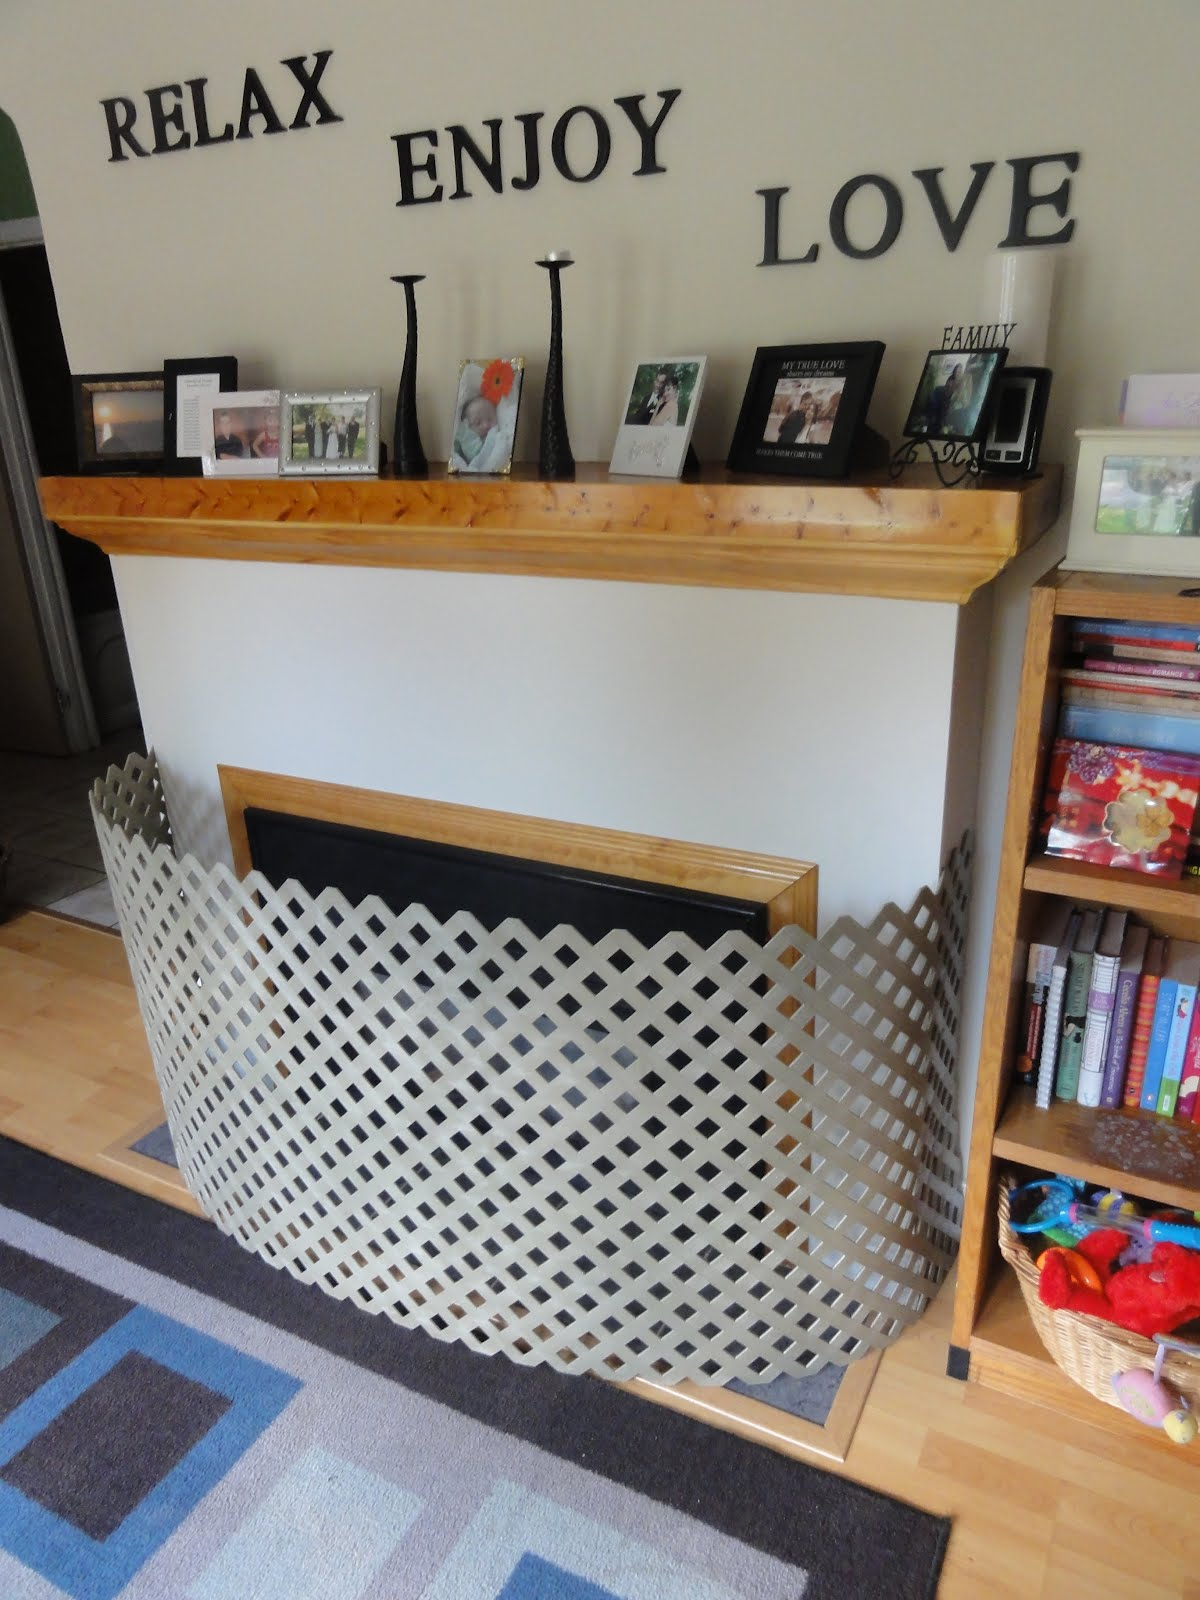 Daniel Sokolowski's Blog: How to child proof a fireplace